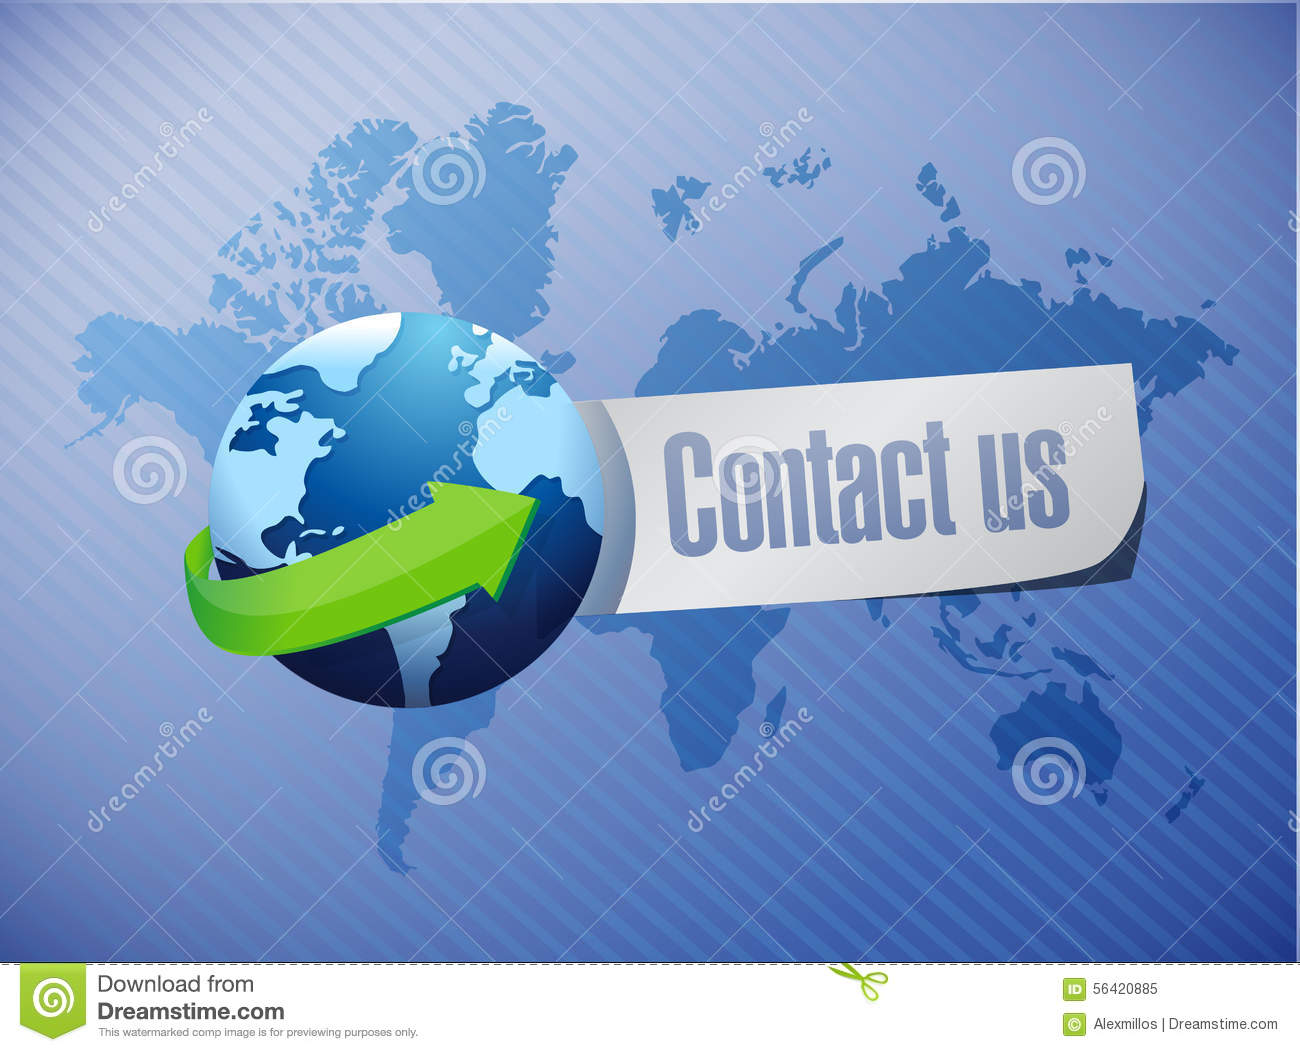 Contact us sign stock image 5556391 for Hispano international decor contact number